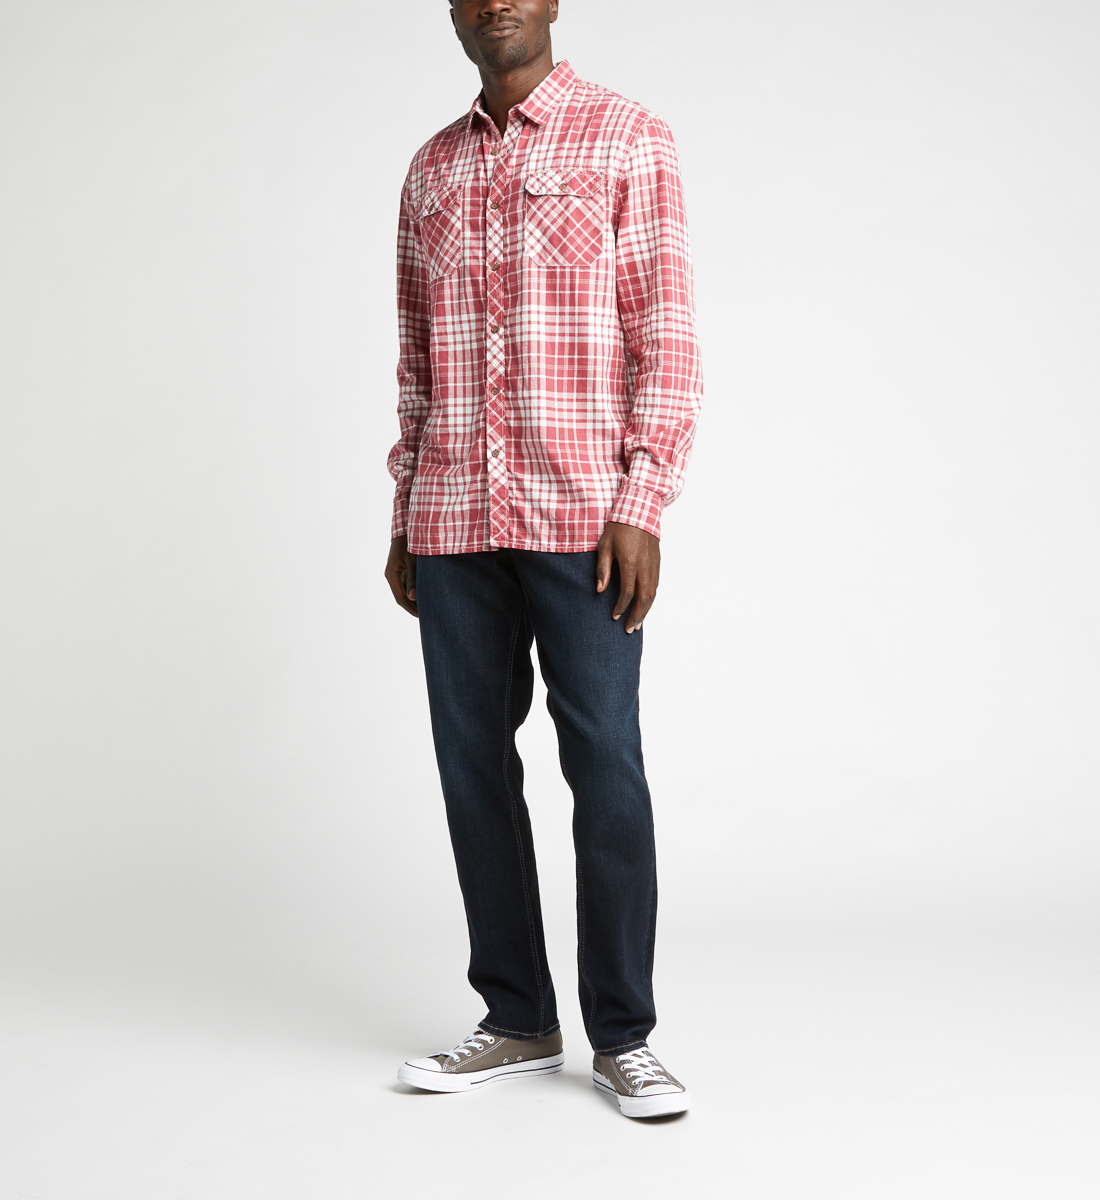 Charly Long-Sleeve Plaid Button-Down Shirt,Red Back